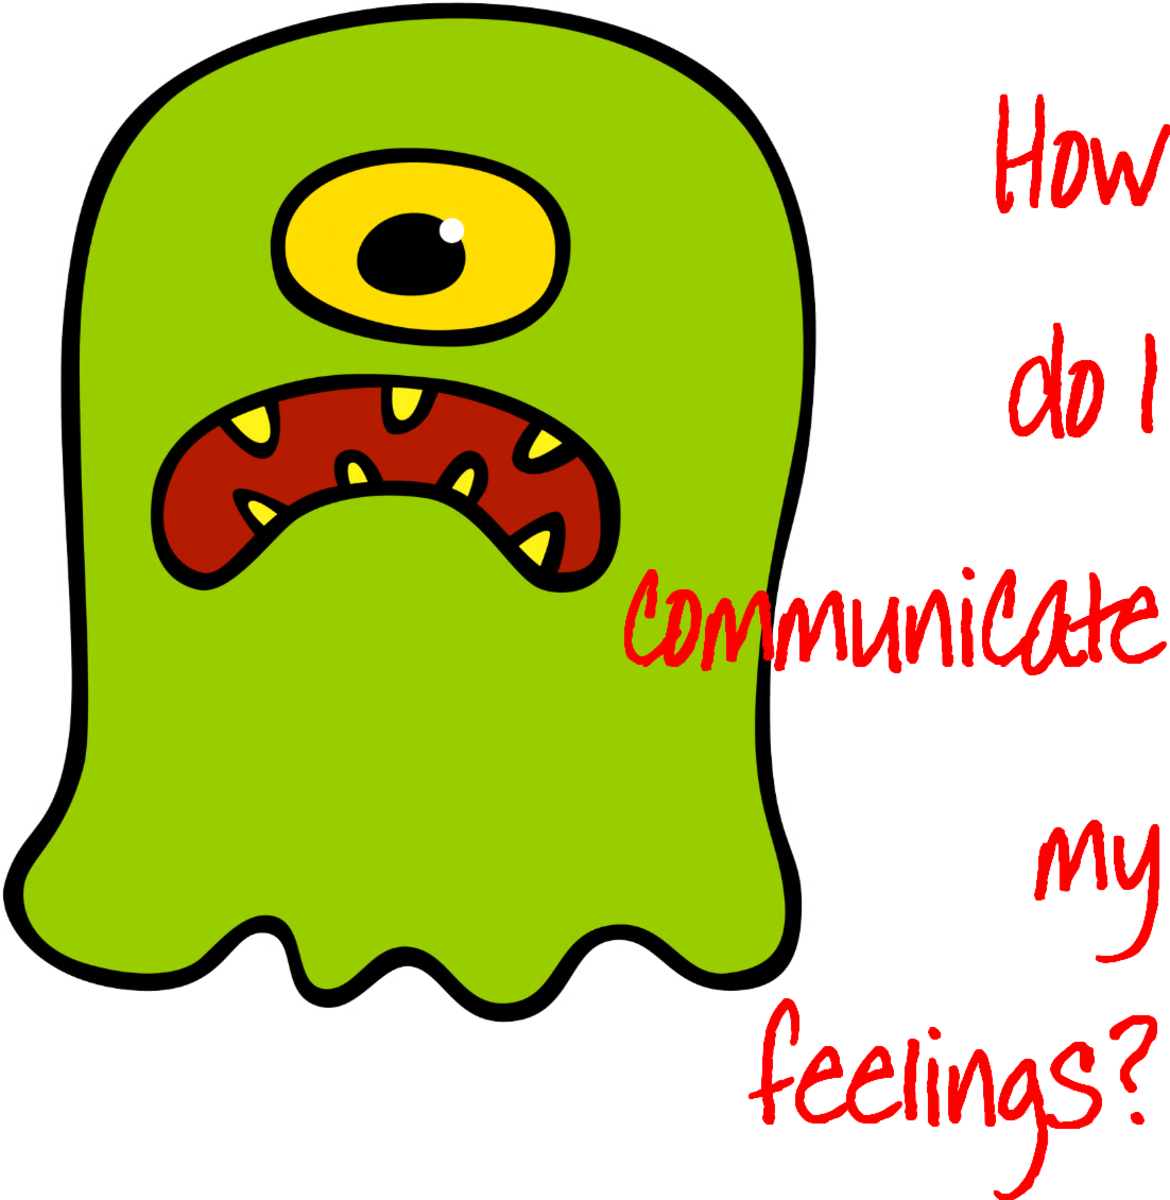 The listener needs to show EMPATHY to allow someone to speak about their feelings